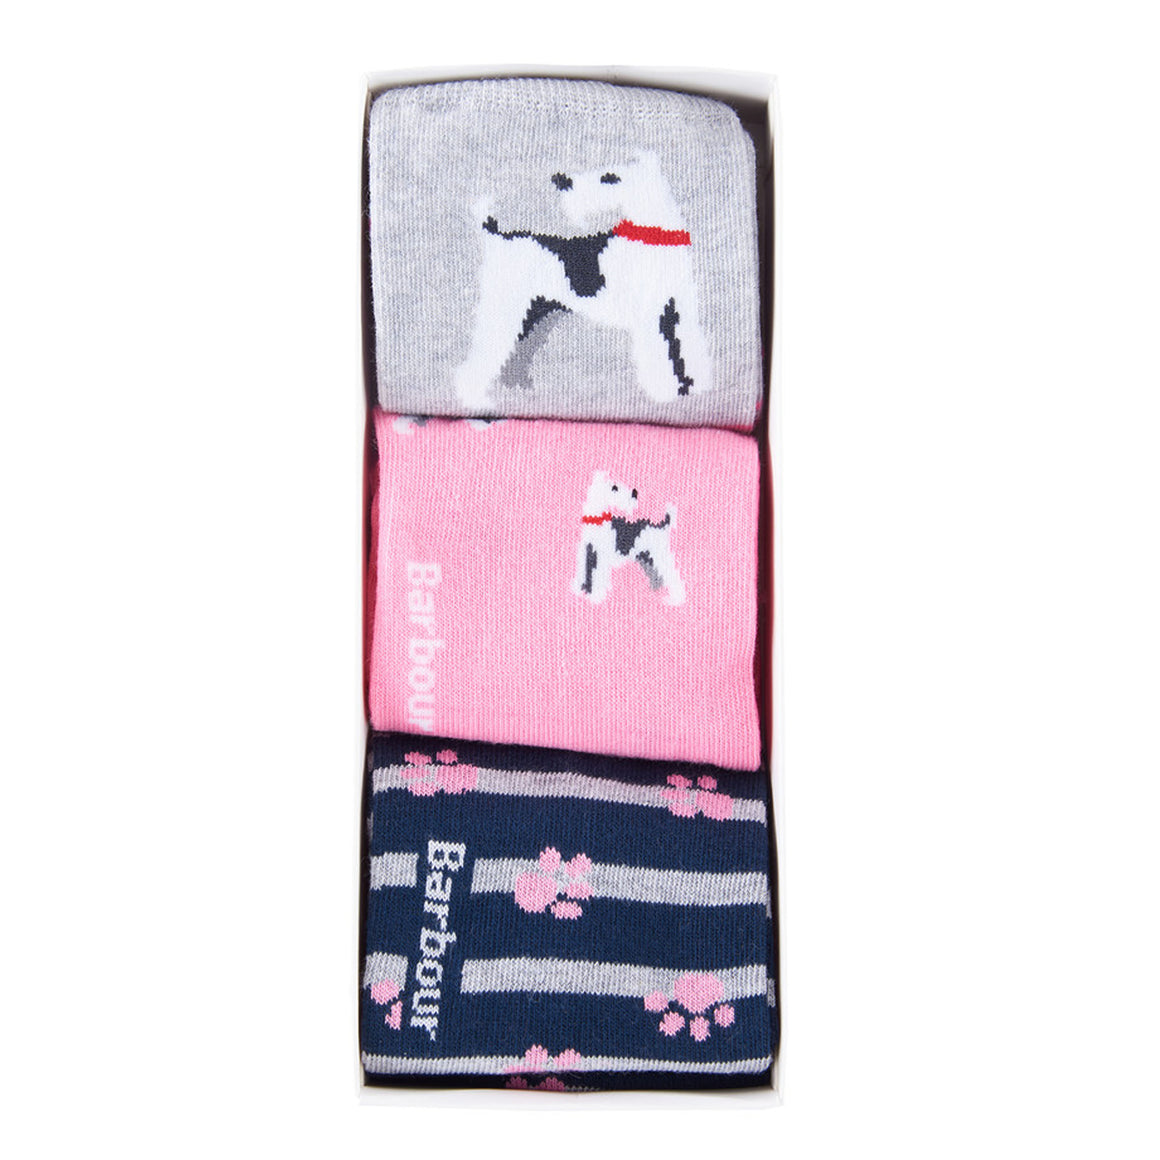 Terrier Paw Sock Giftbox for Women in Pink/Grey/Navy